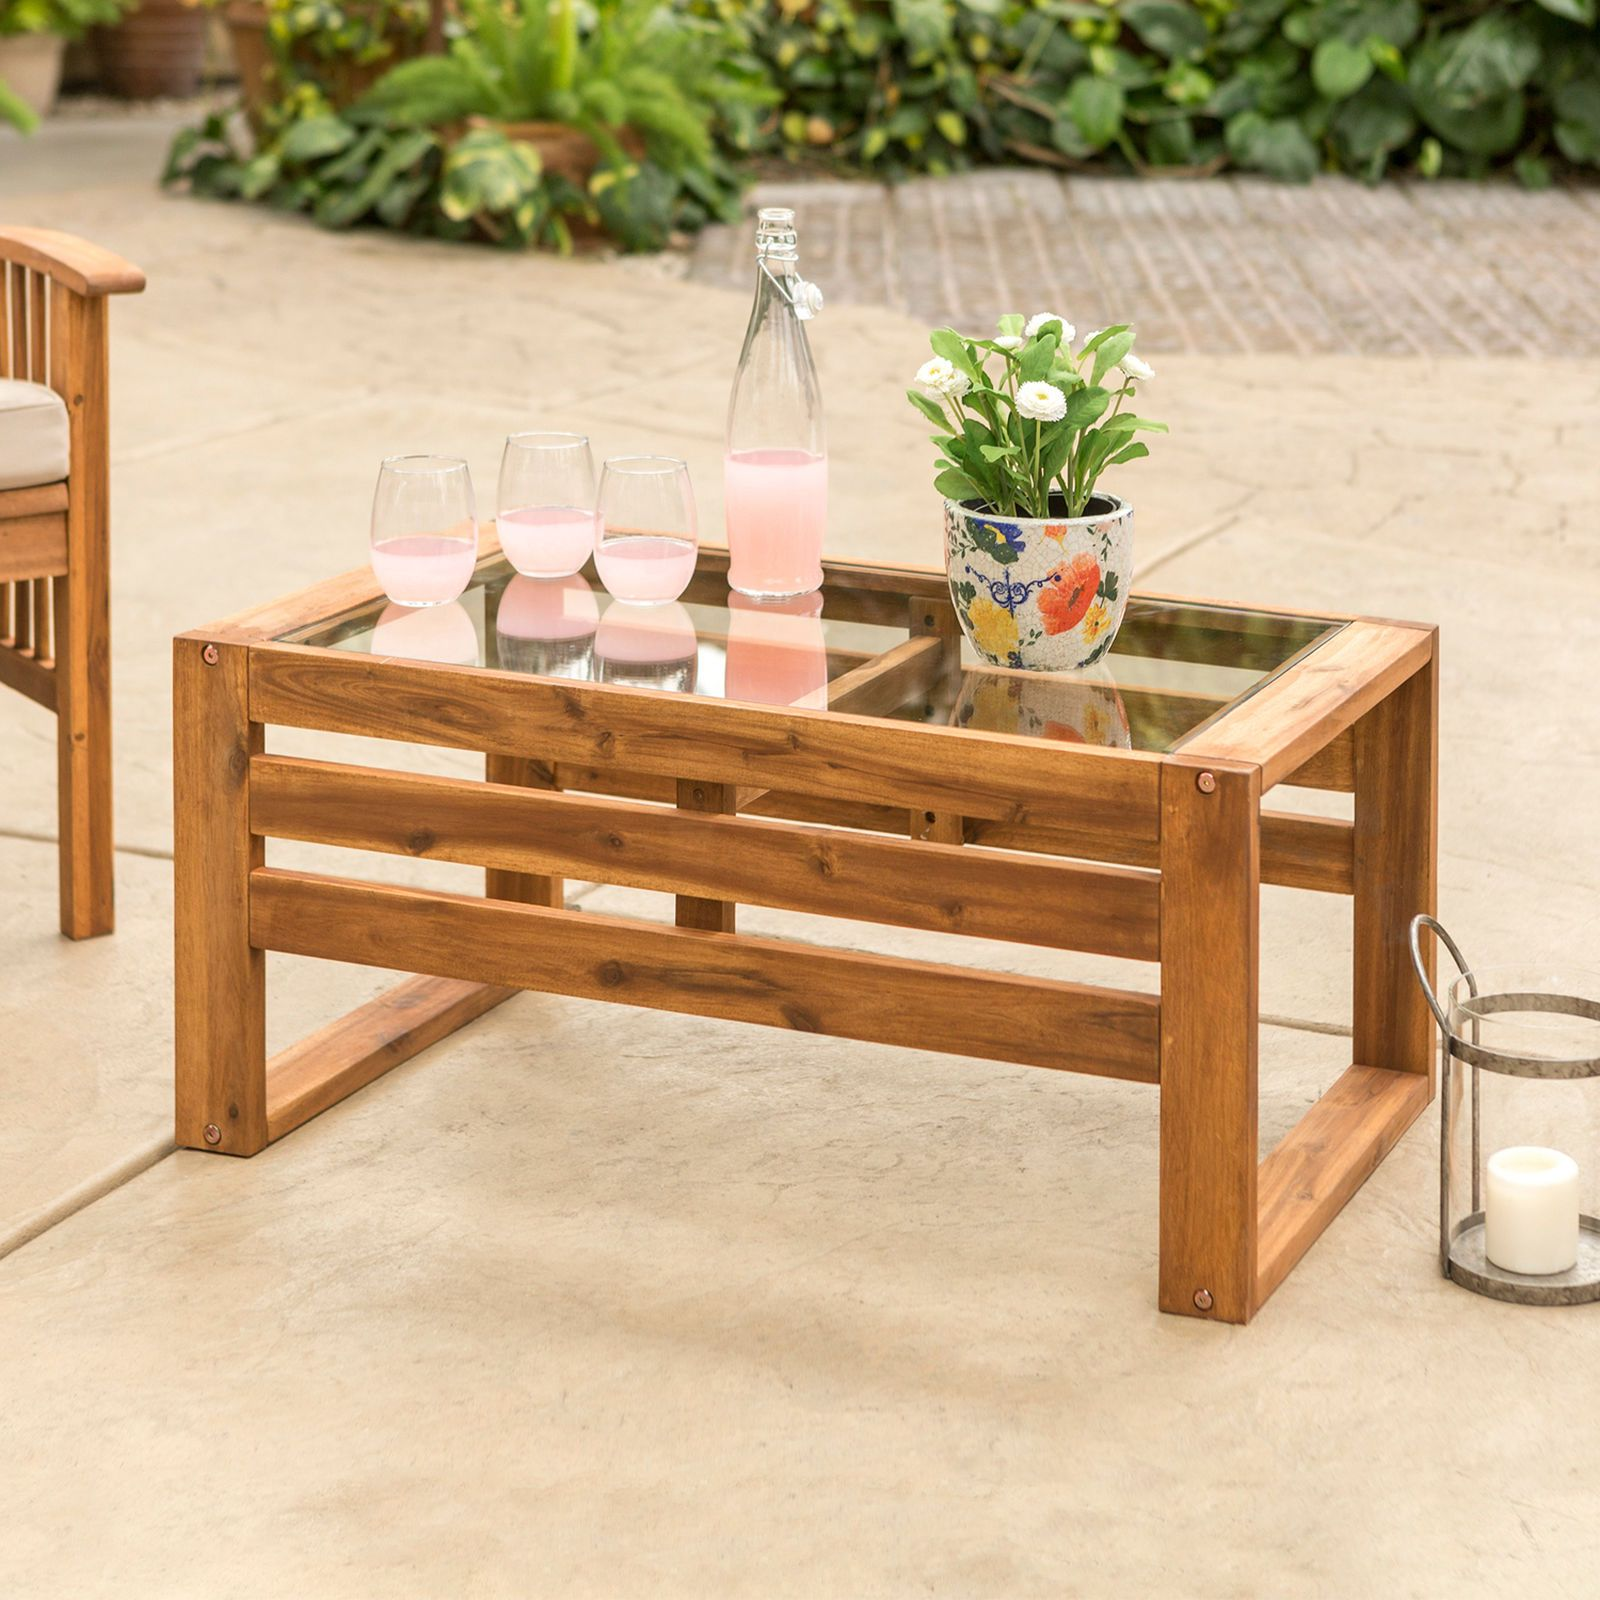 Hudson Wood Patio Coffee Table With Glass Top Pier 1 Imports Wood Patio Indoor Patio Furniture Outdoor End Tables [ 1600 x 1600 Pixel ]